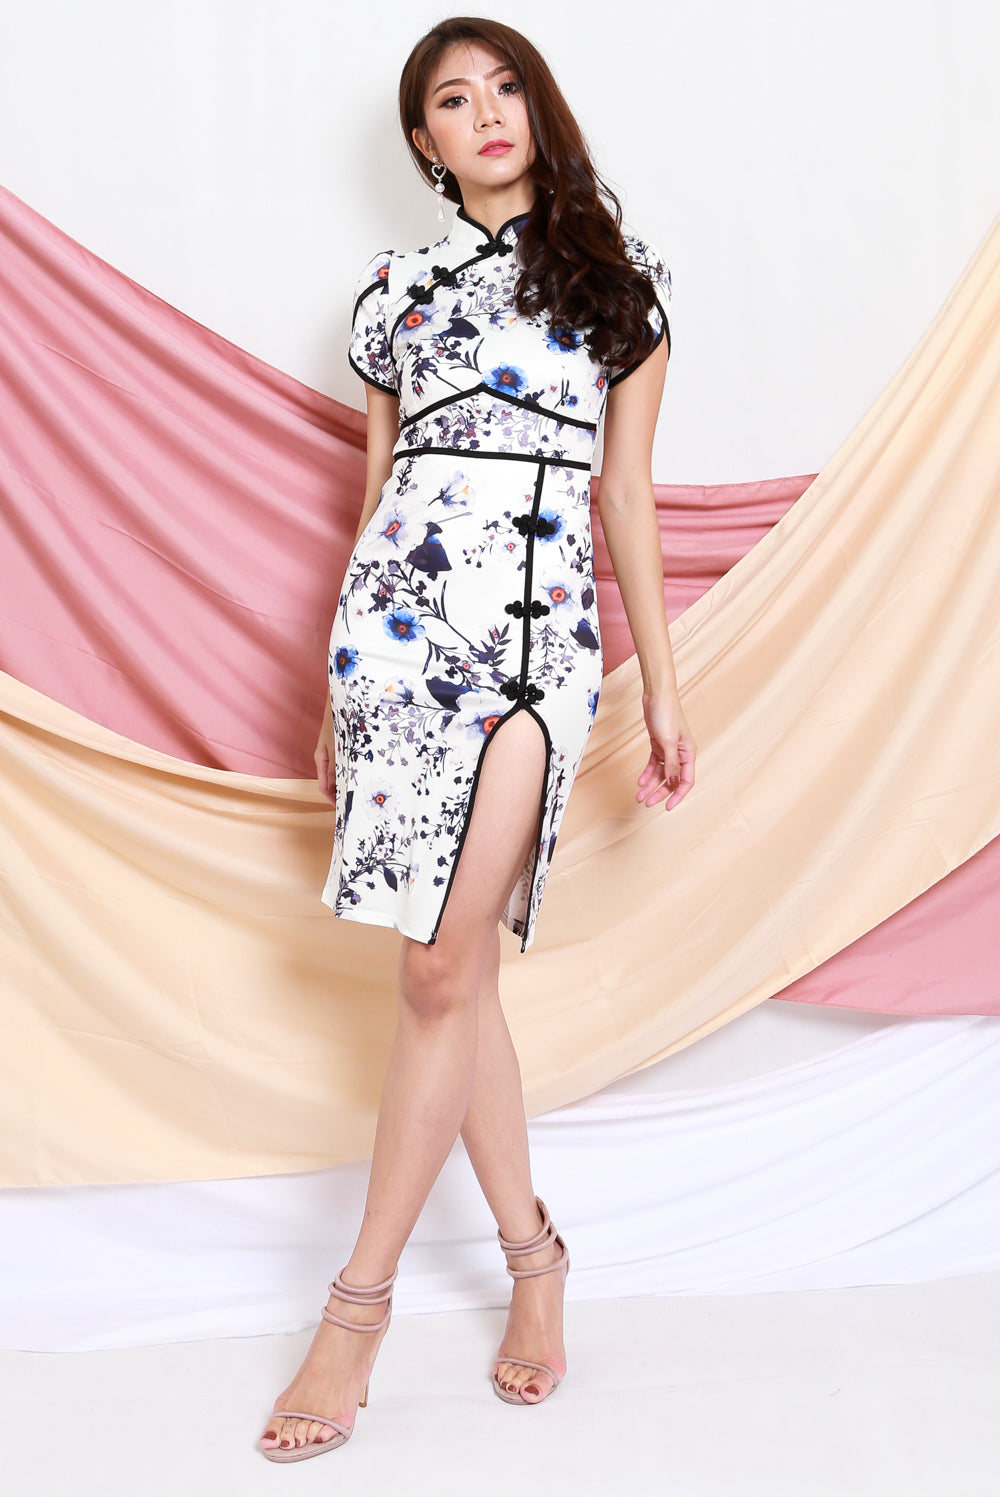 Outline Floral Midi Cheongsam Dress